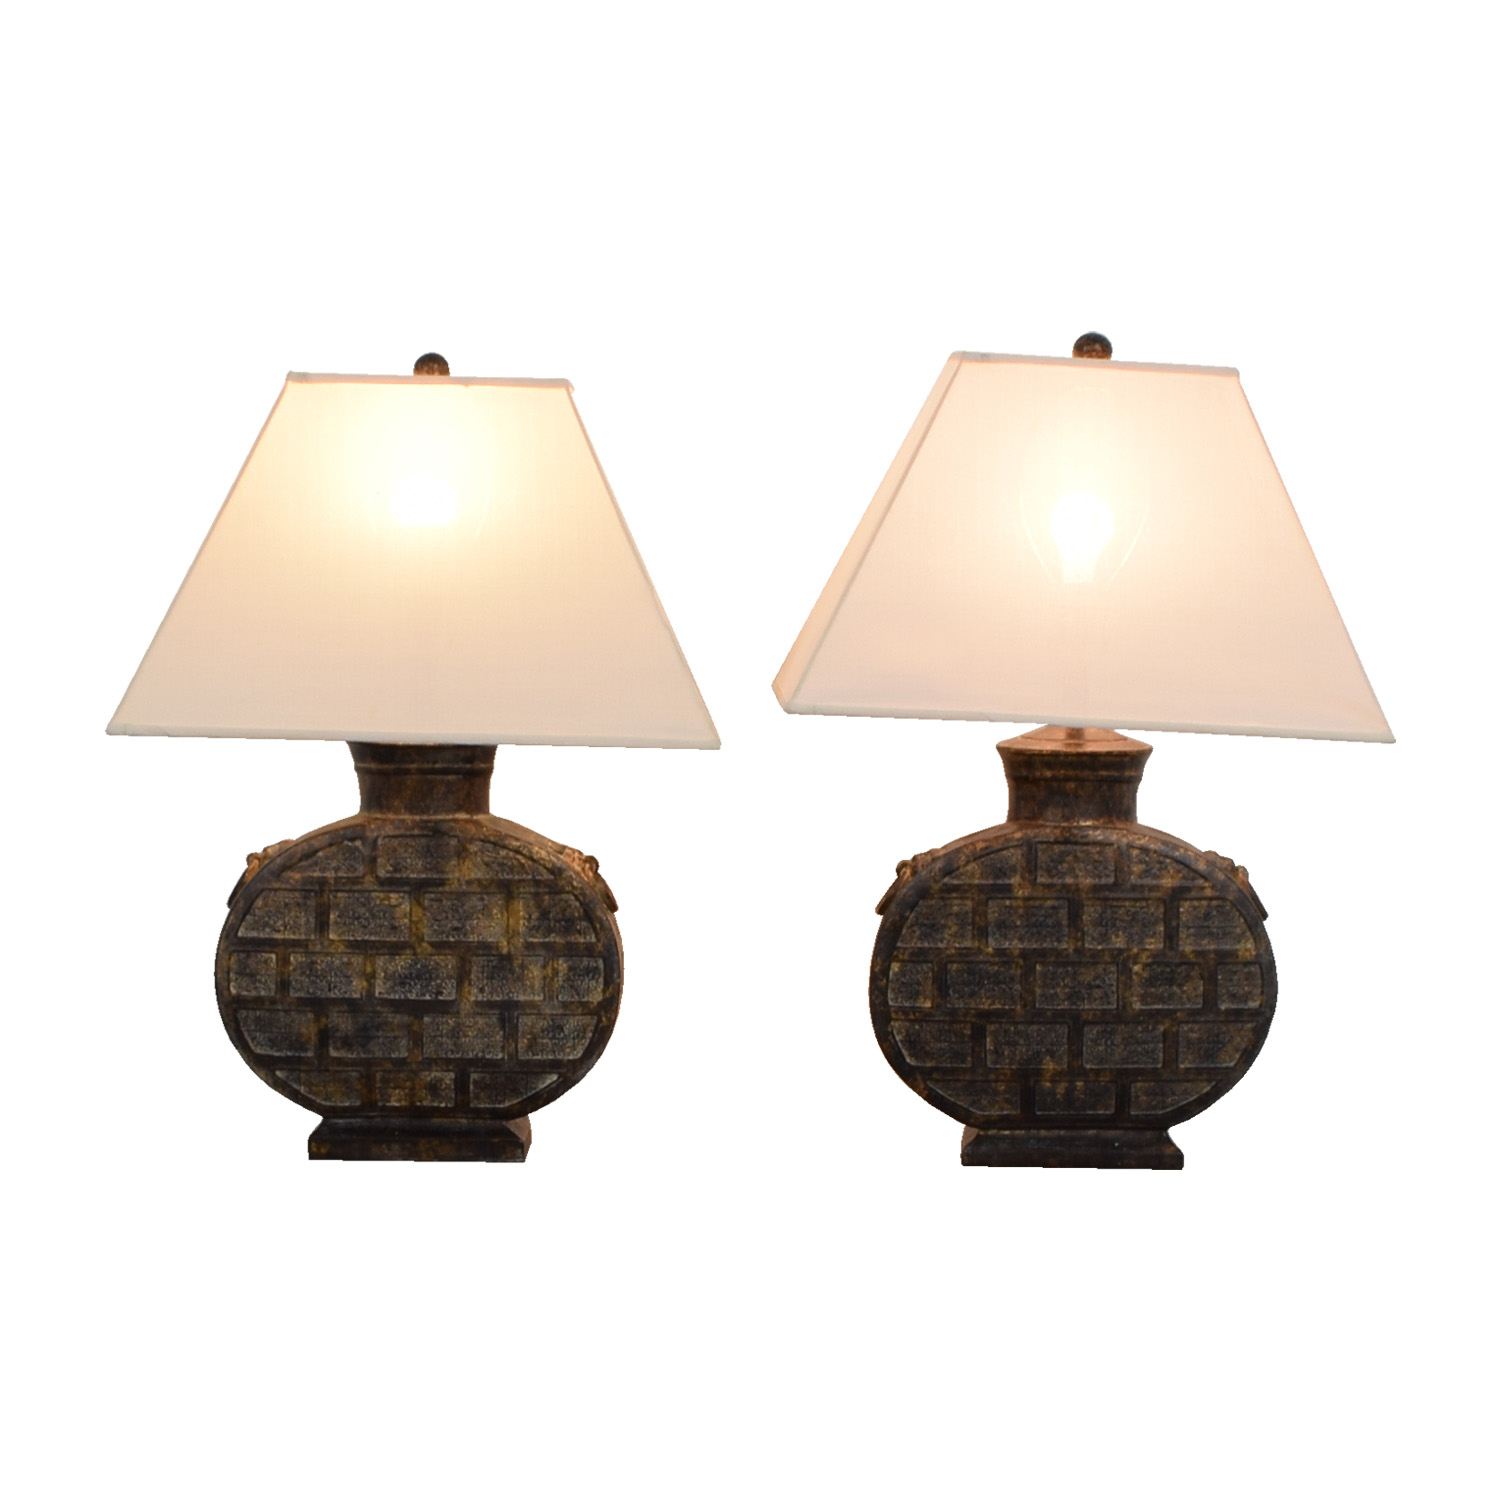 86 off ethan allen ethan allen round table lamps decor ethan allen ethan allen round table lamps nyc aloadofball Choice Image